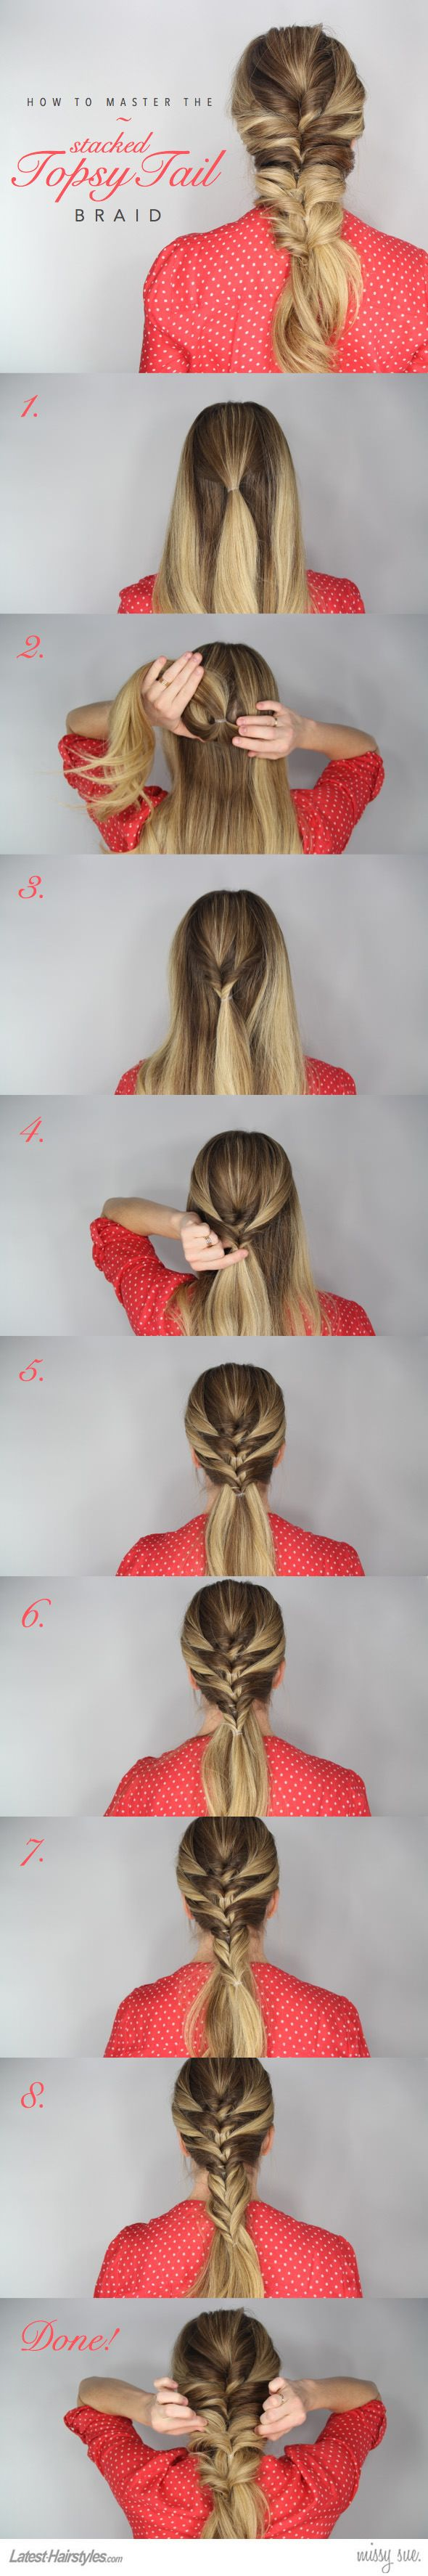 best hair images on pinterest hairstyle ideas coiffure facile